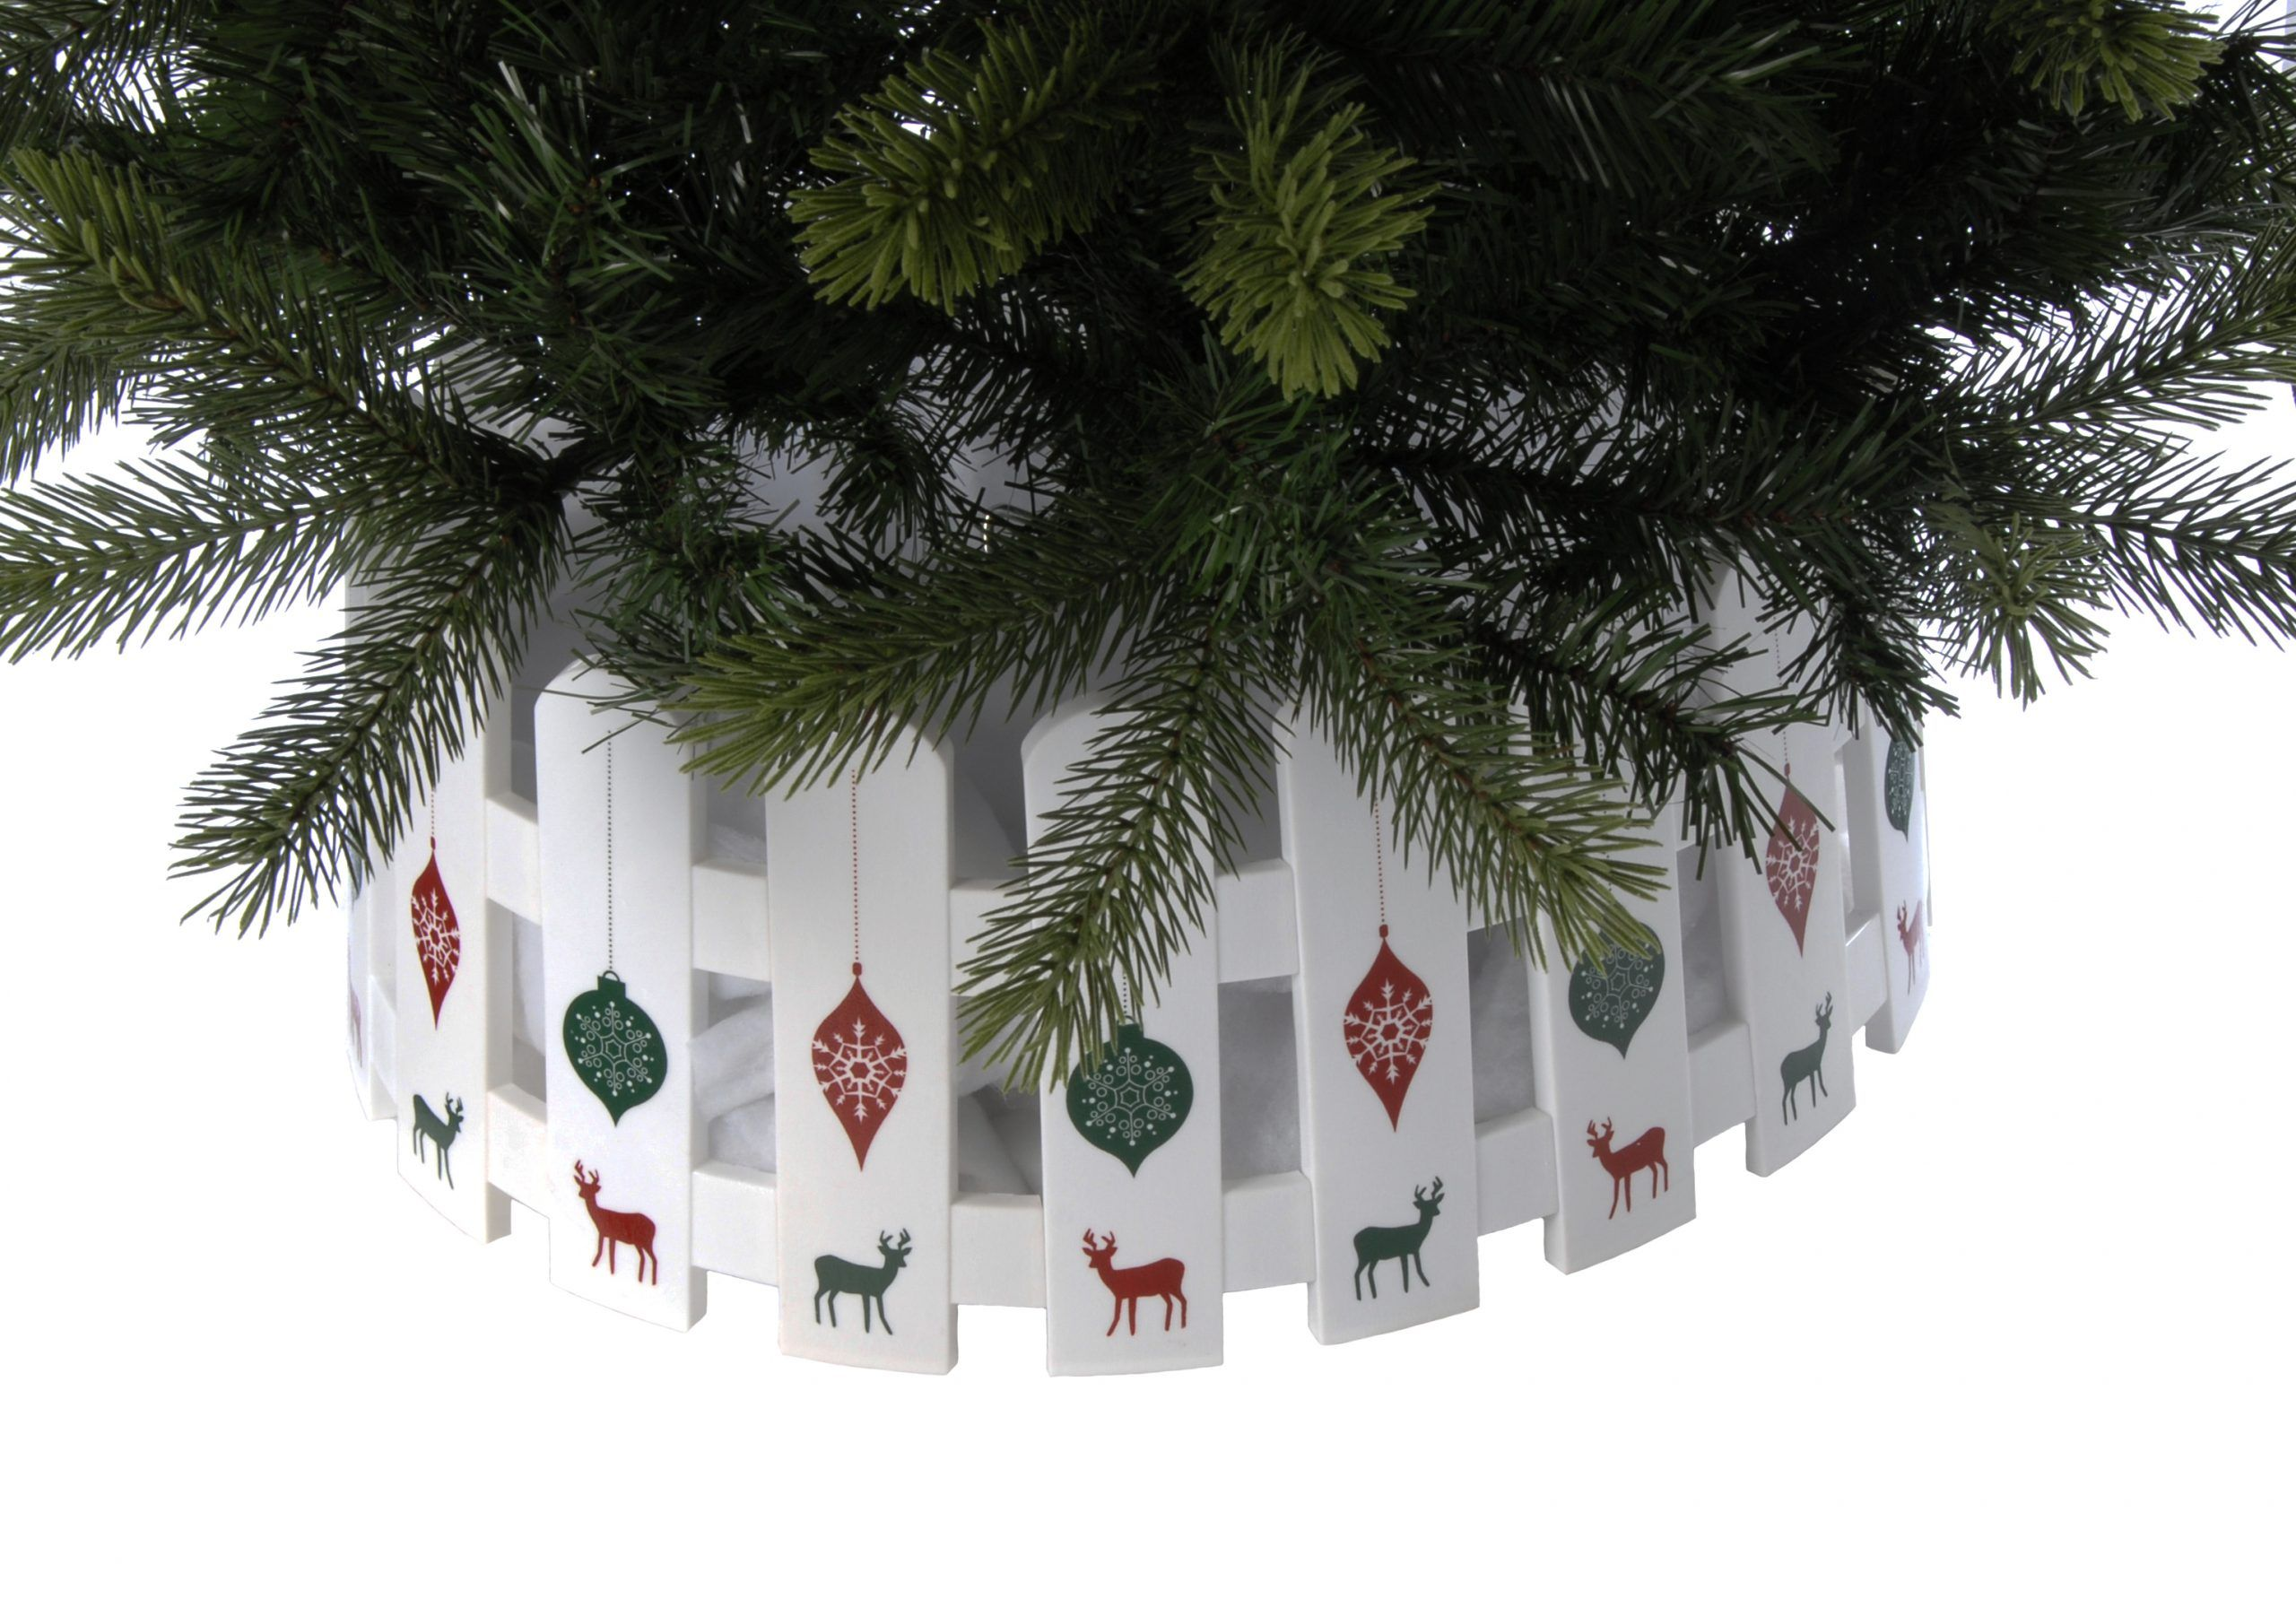 54cm x 22cm tree skirt with reindeer decoration